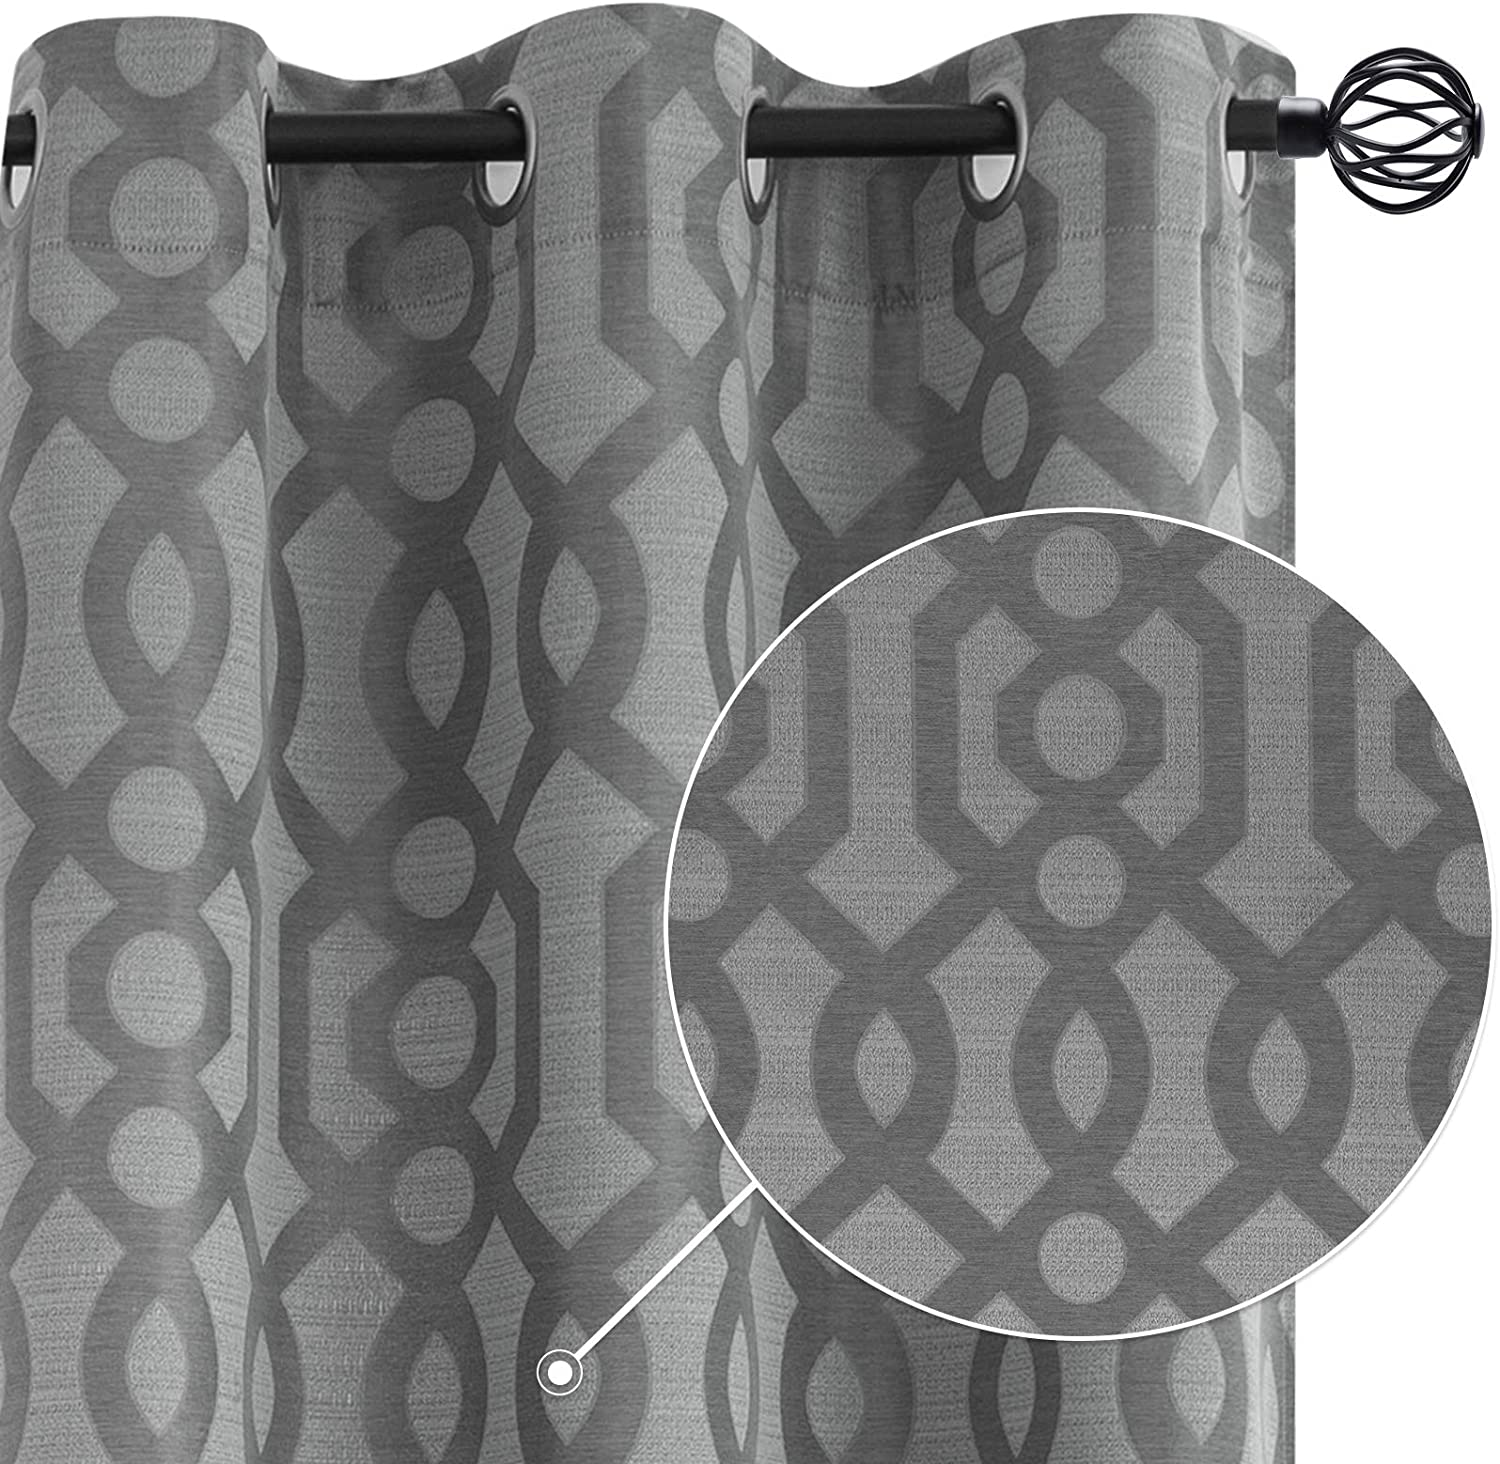 Curtains Gray 84 inch Long Bedroom Living Room Window Treatment Curtain Set Jaccuard Tile Design Grommet Top Light Filtering Drapes 2 Panels